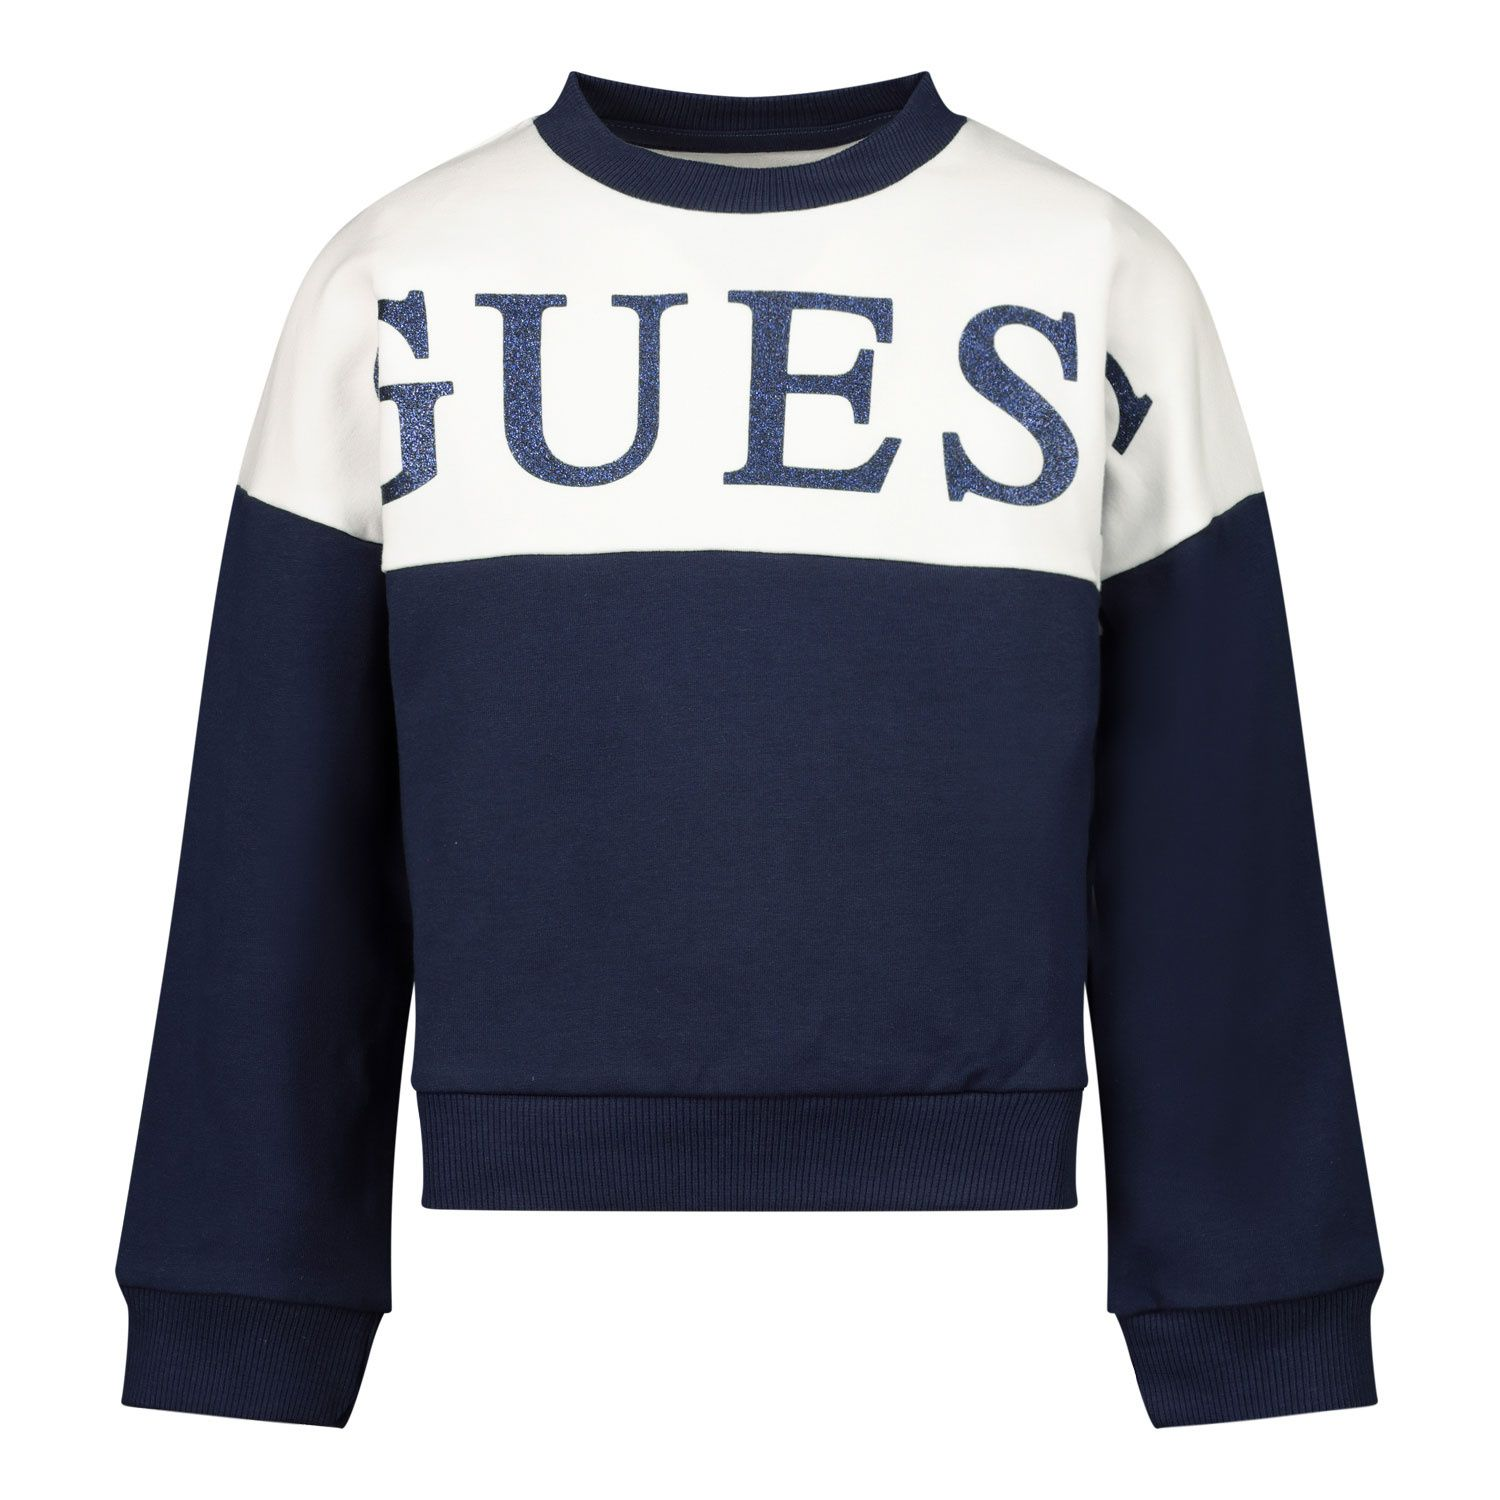 Picture of Guess K0YQ00/KA6V0 kids sweater navy